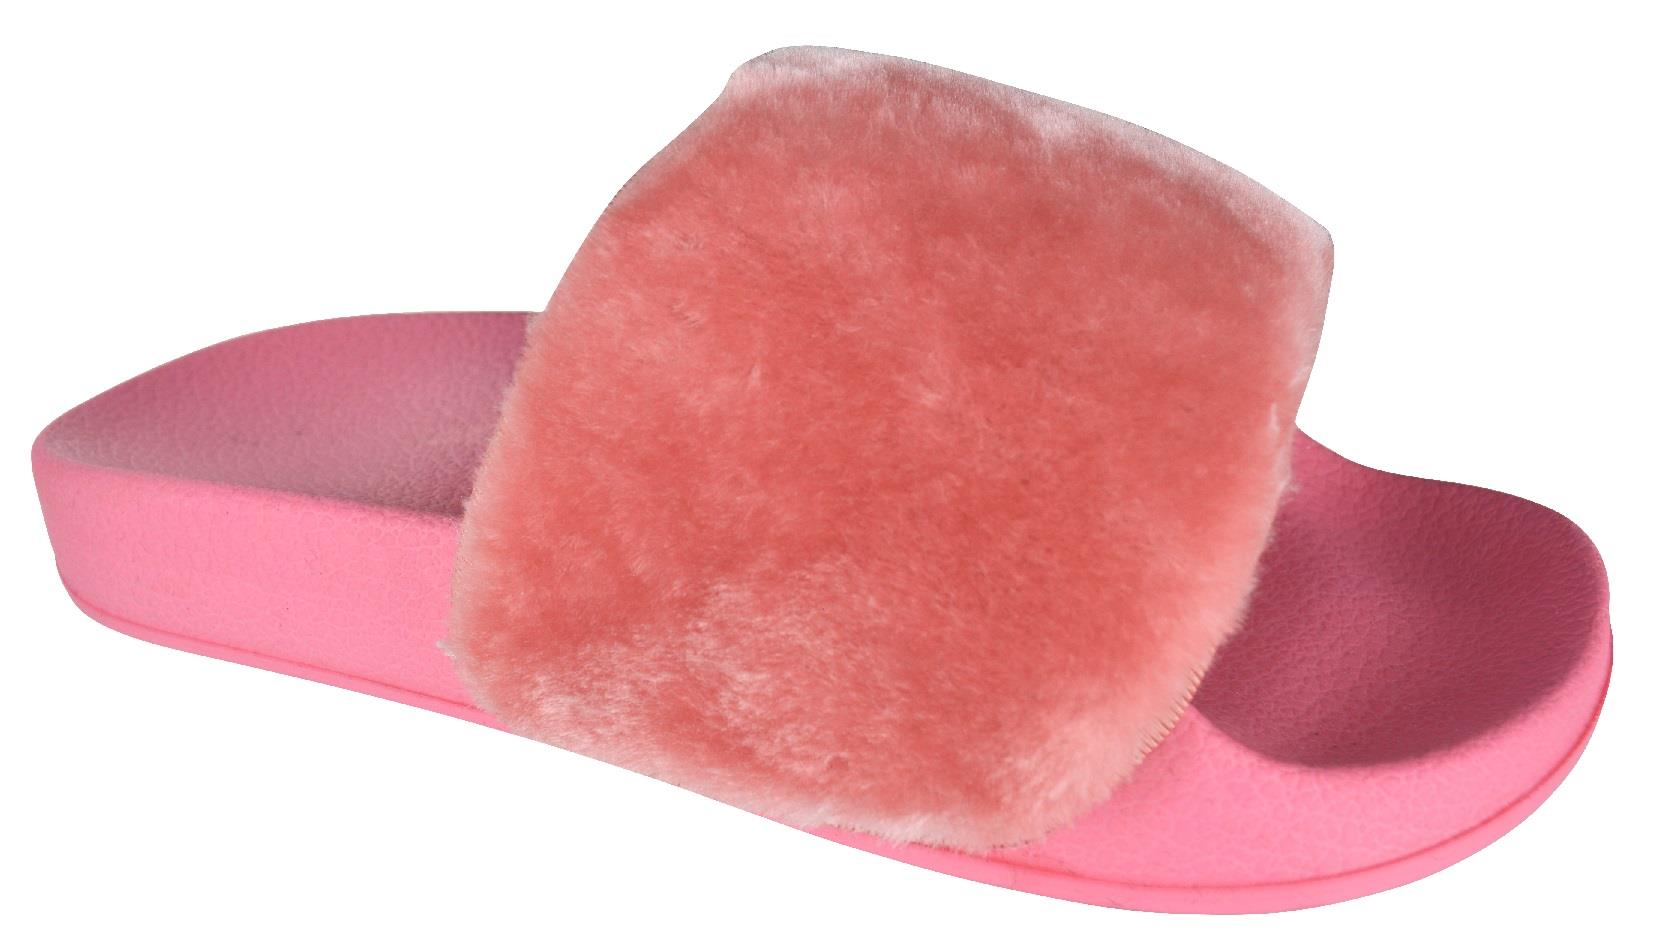 d225bce834b Details about Ladies Women Slip On Fluffly Fur Slippers Slide Sandals Pink,  White Grey Rainbow